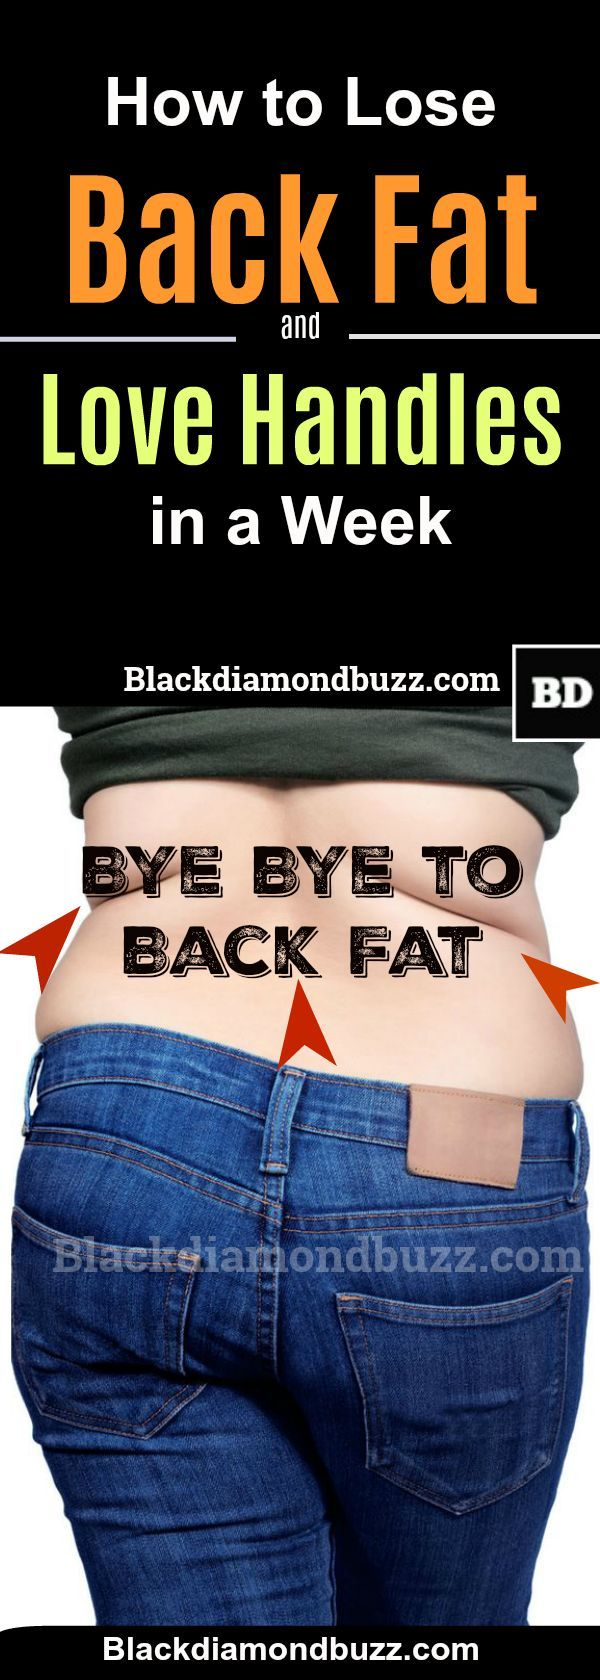 Back fat workout at home - How to lose back fat and love handles fast  in a week. Find out here the healthy living  ways to get rid of muffin top , back fat, and love handles at home.